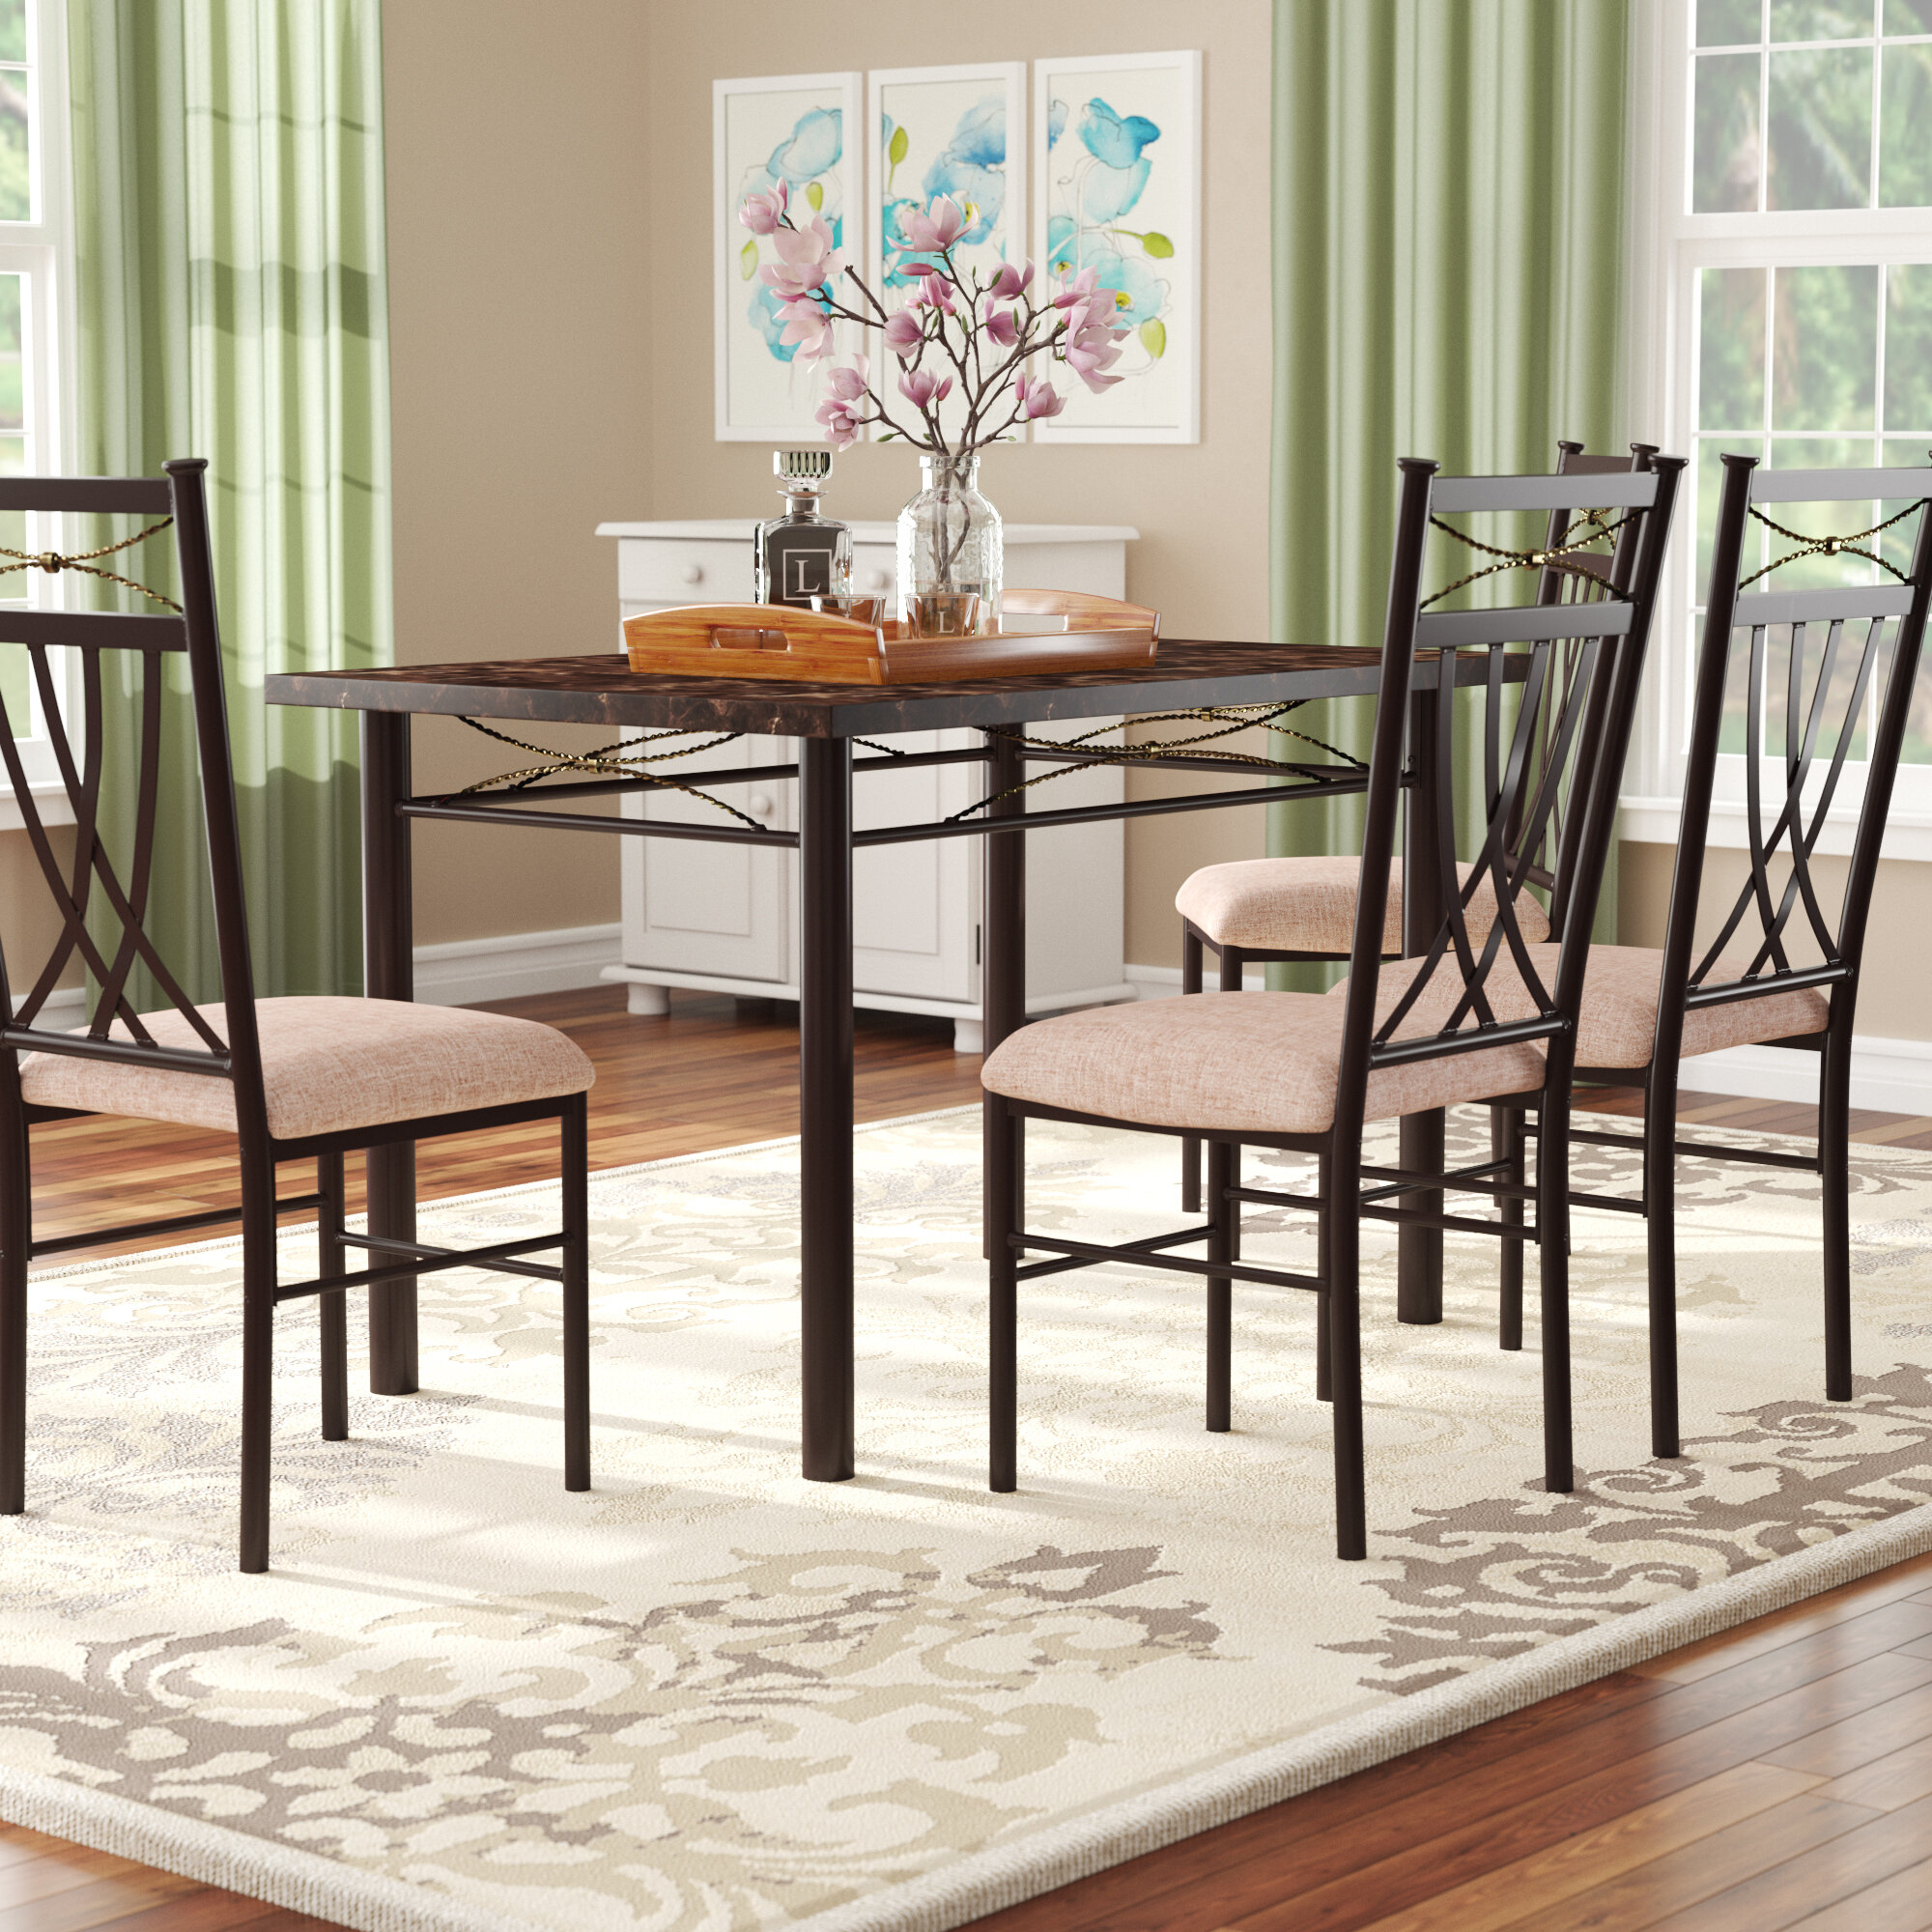 Branden 5 Piece Dining Set Pertaining To Most Recently Released Calla 5 Piece Dining Sets (View 4 of 20)